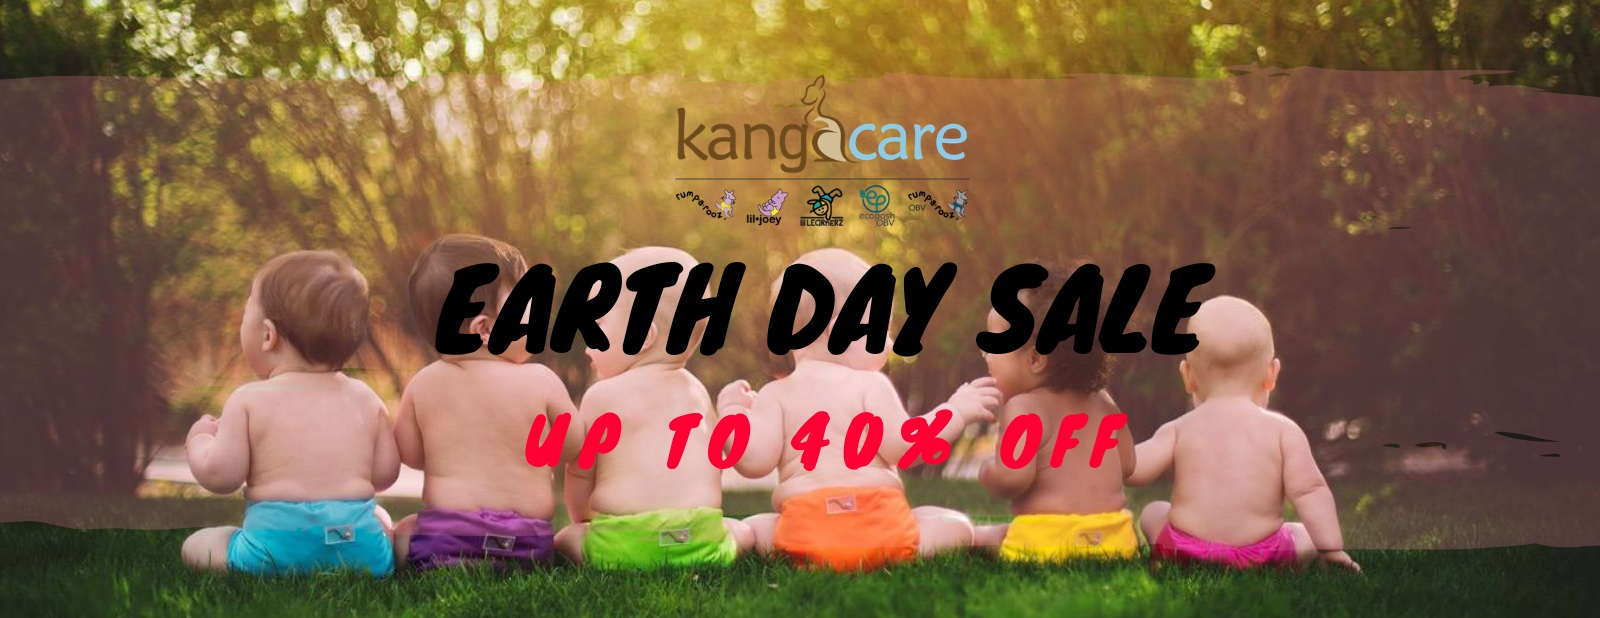 kangacare earth day sales at Enfant Style